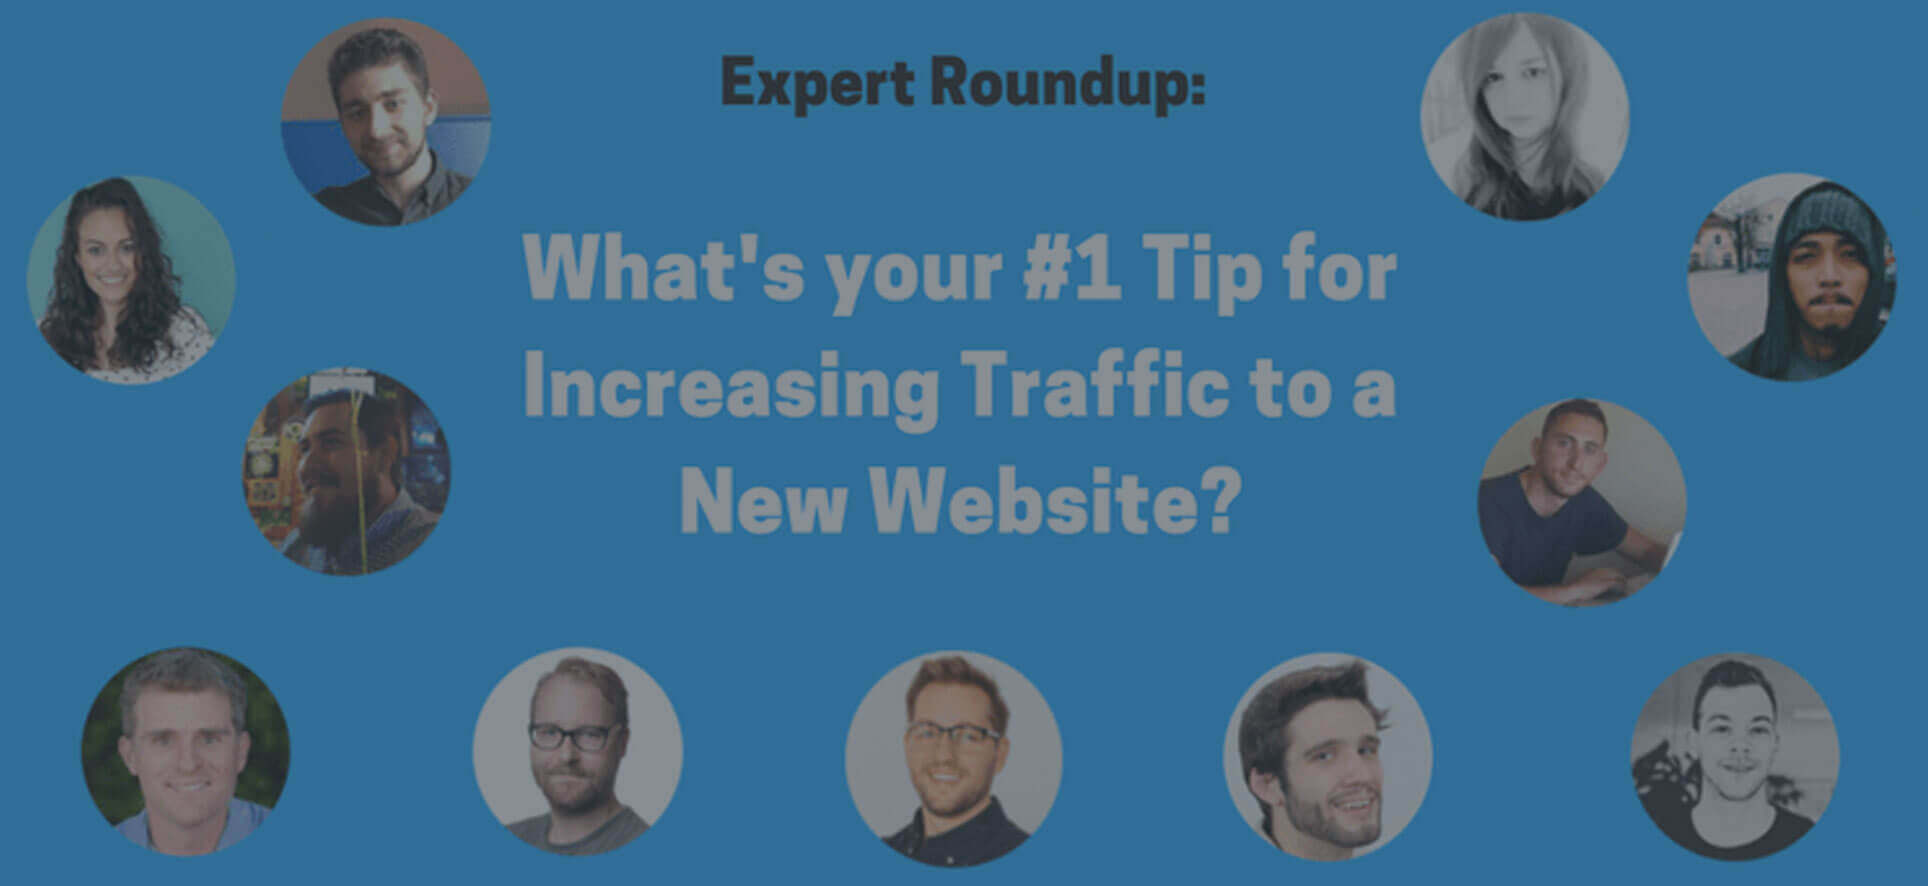 What's your #1 Tip for Increasing Traffic to a New Website